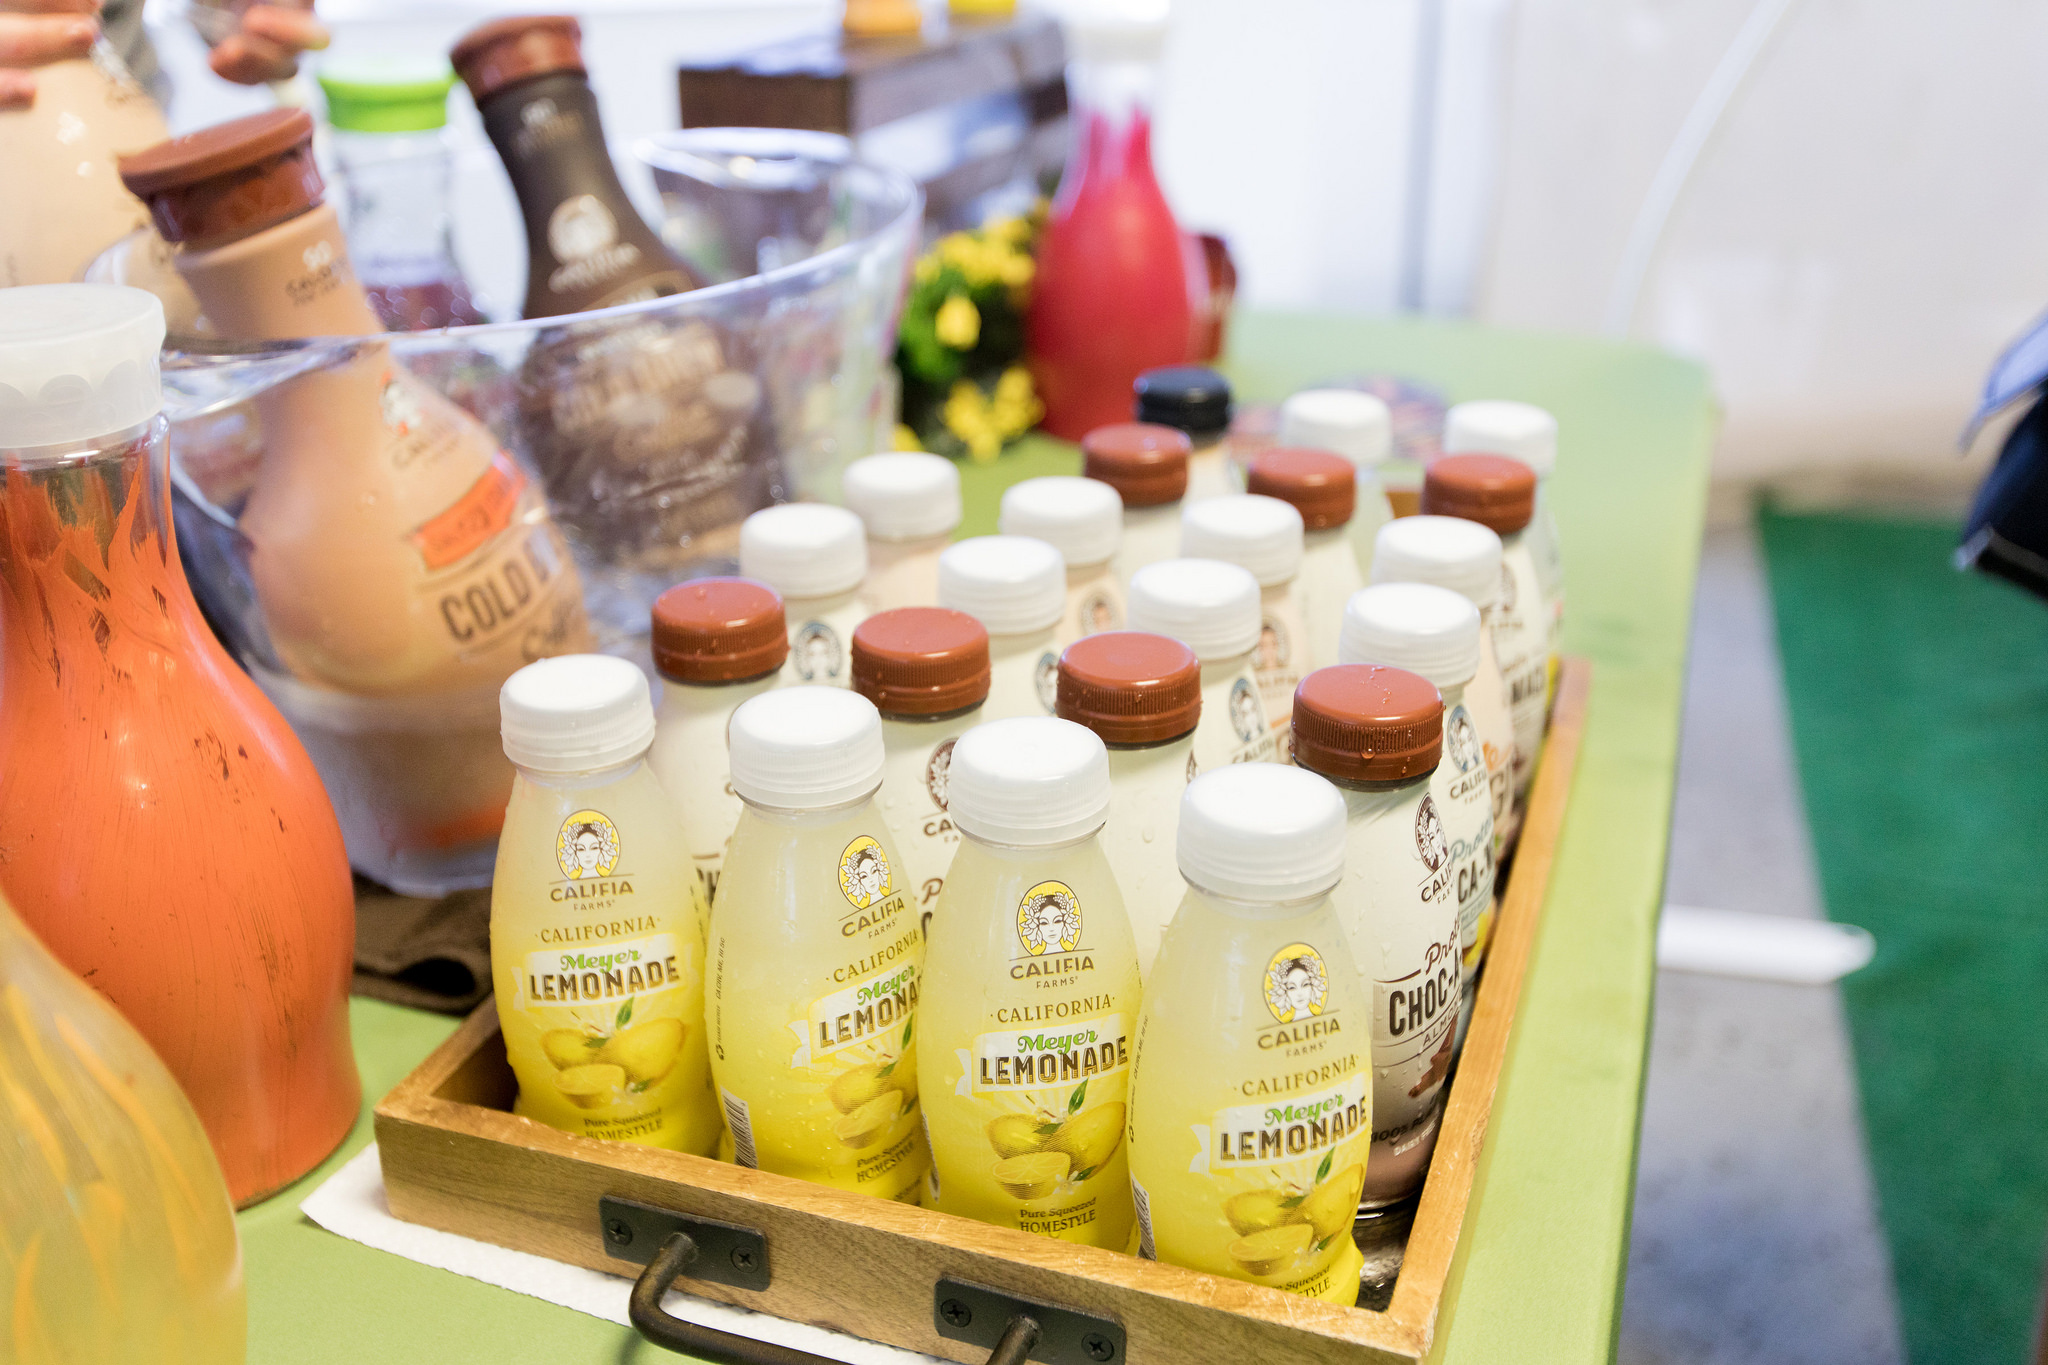 COFFEE + JUICES FROM CALIFIA FARMS